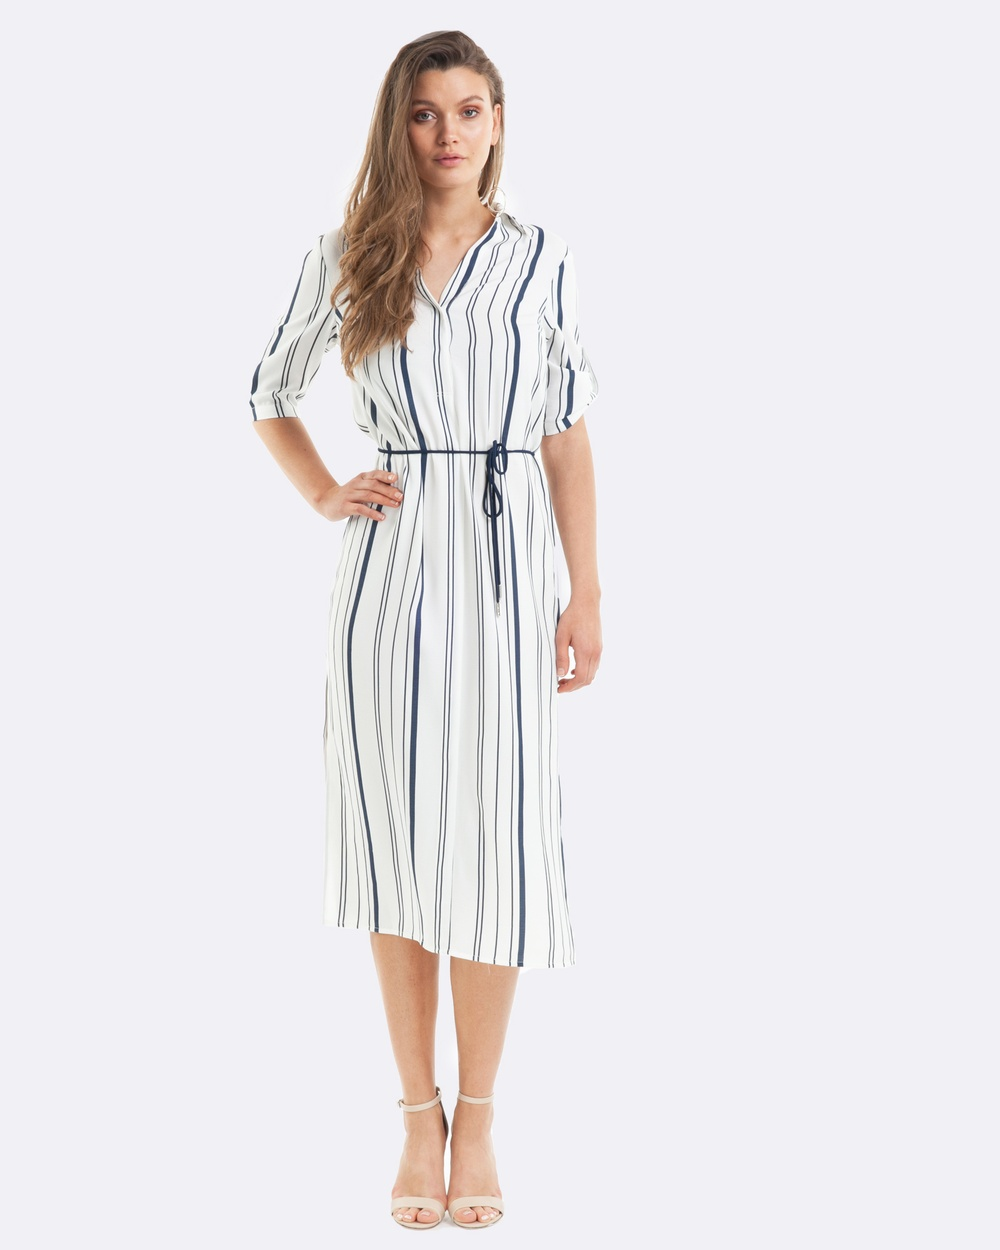 Amelius Alexis Midi Dress Dresses Stripe Alexis Midi Dress